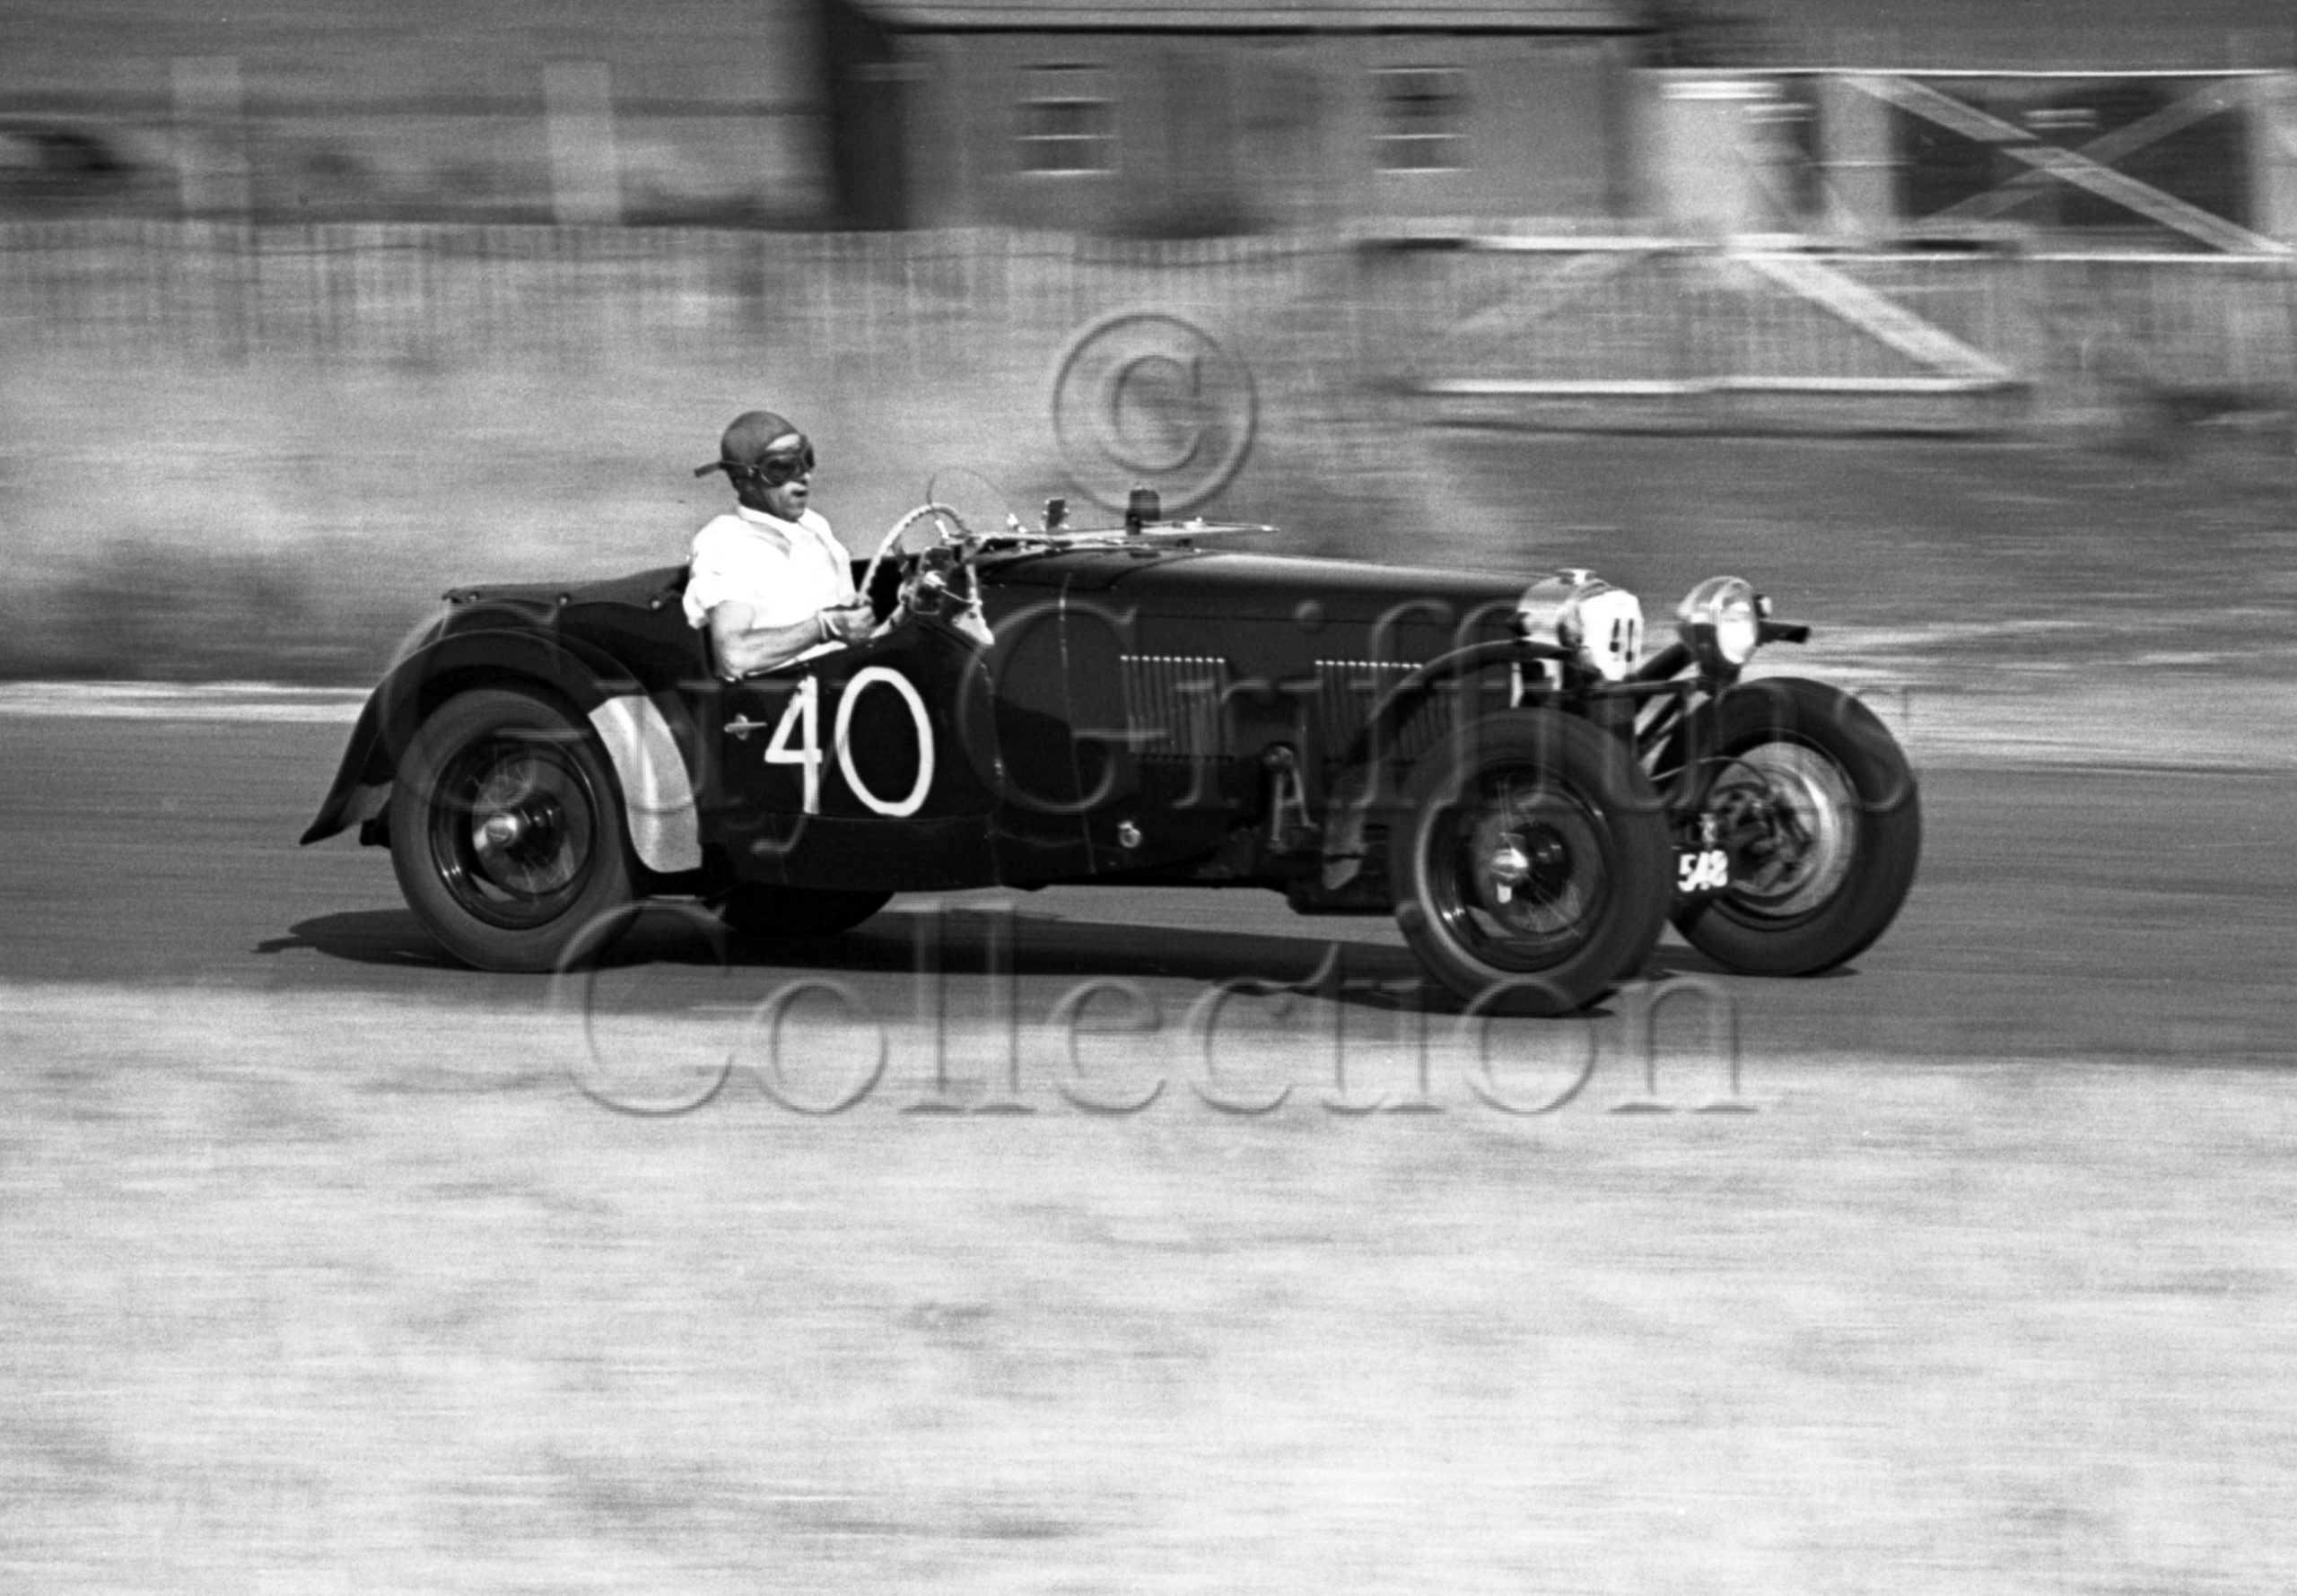 20-702–C-G-Meisl–HRG–Goodwood—13-08-1949.jpg - Guy Griffiths Collection